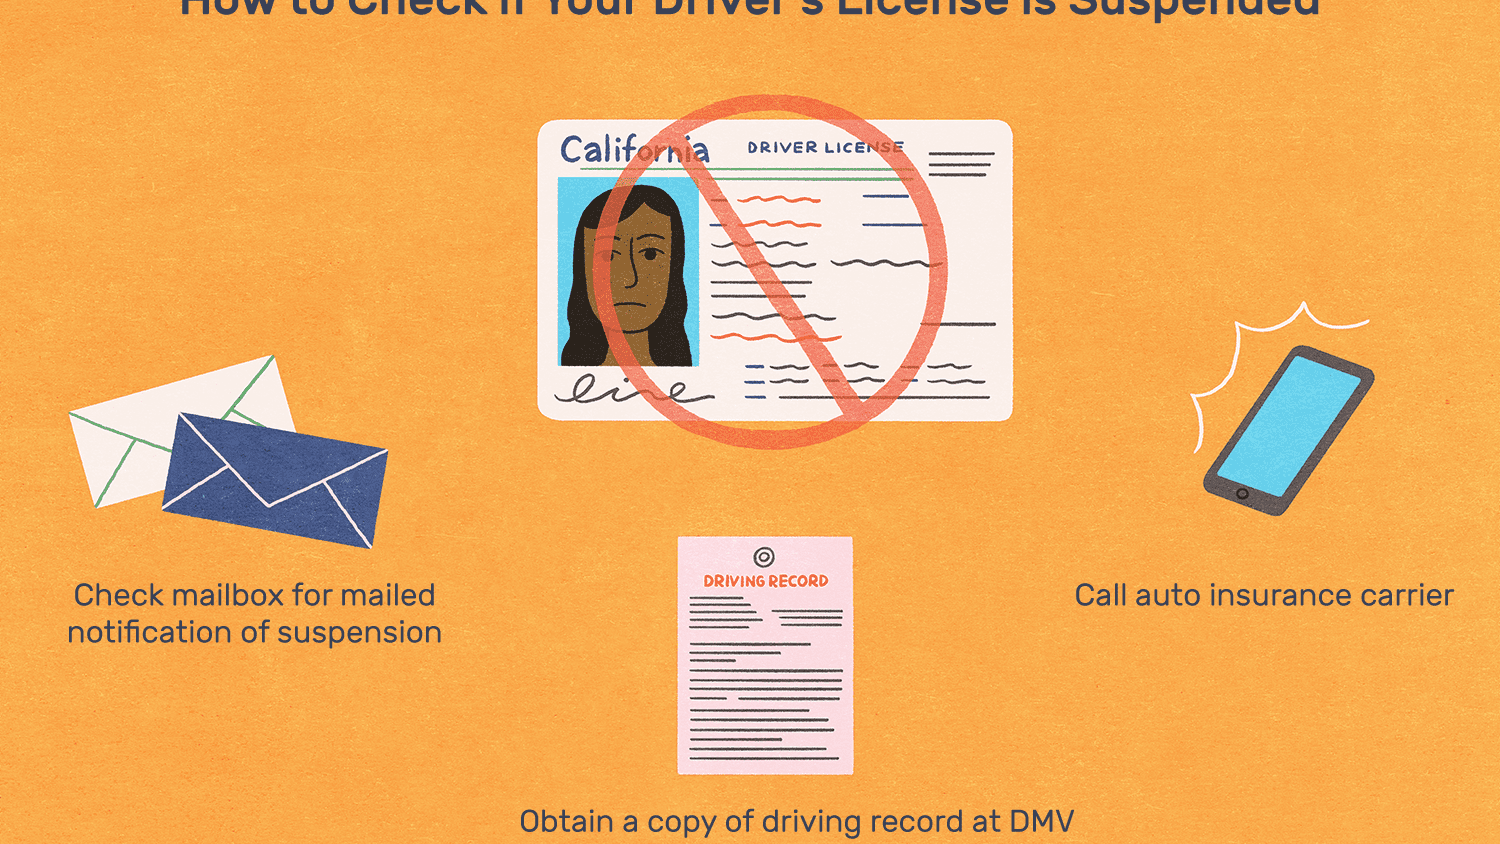 How Can I Find Out If My Driver's License Is Suspended?